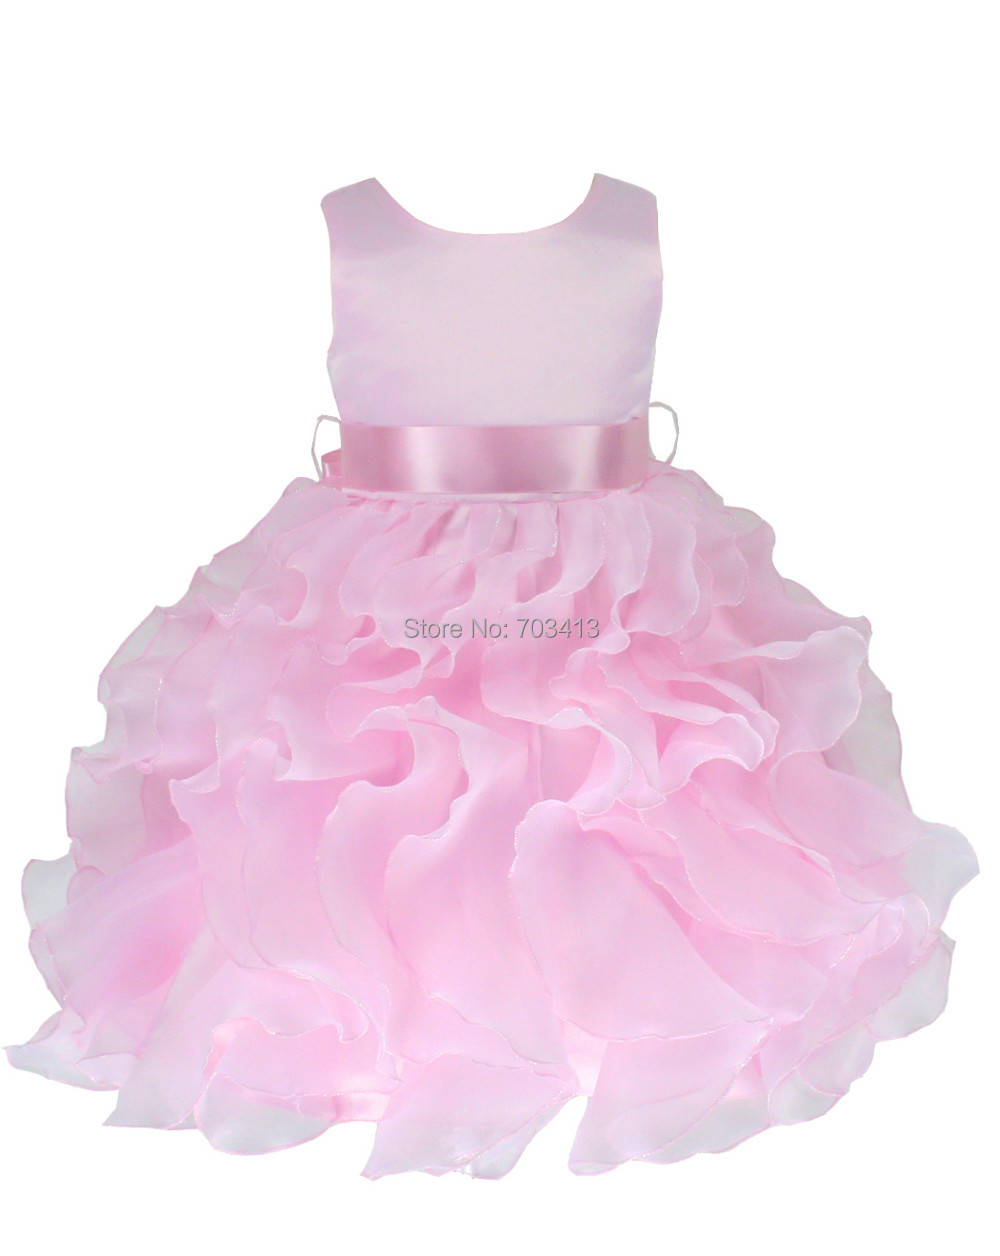 P232B free shipping Pink Satin Baby Christening/Pageant Infant Girl Dress S M L XL(China (Mainland))